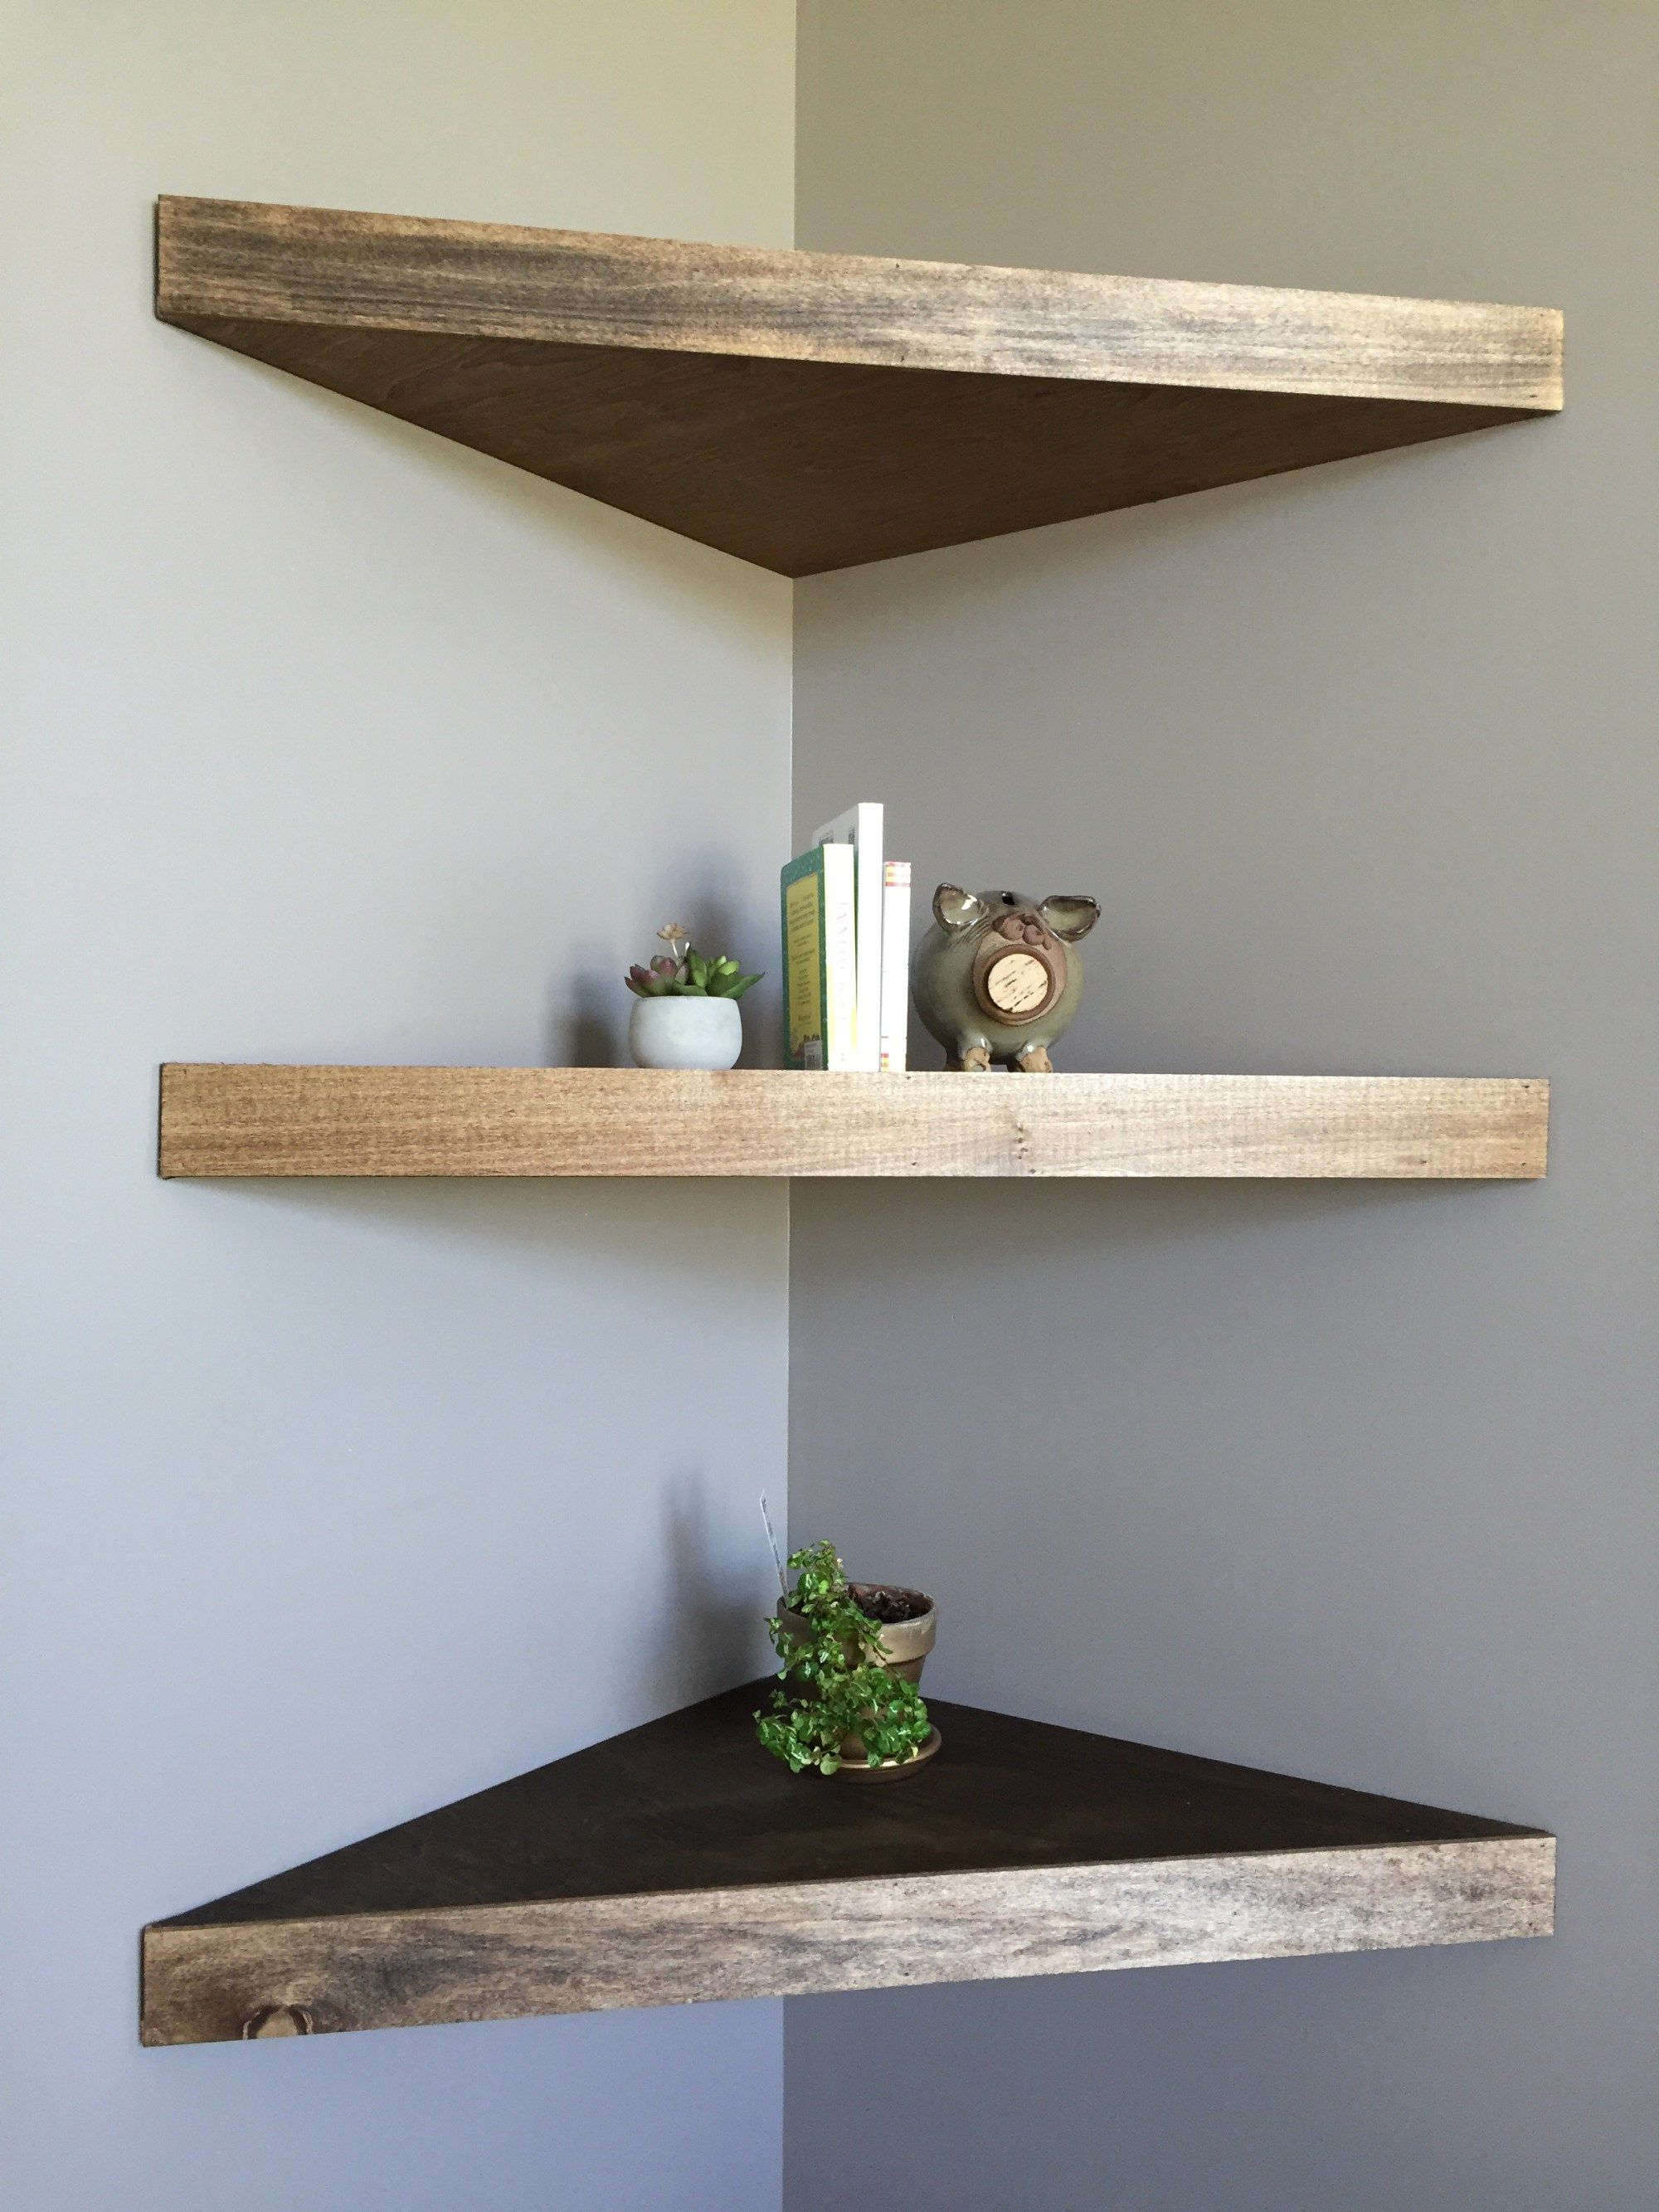 diy floating corner shelves for home shelf wood bathroom closet storage ideas bright coloured tall bookcase ikea black wall unit danver coat hanger white high gloss and what